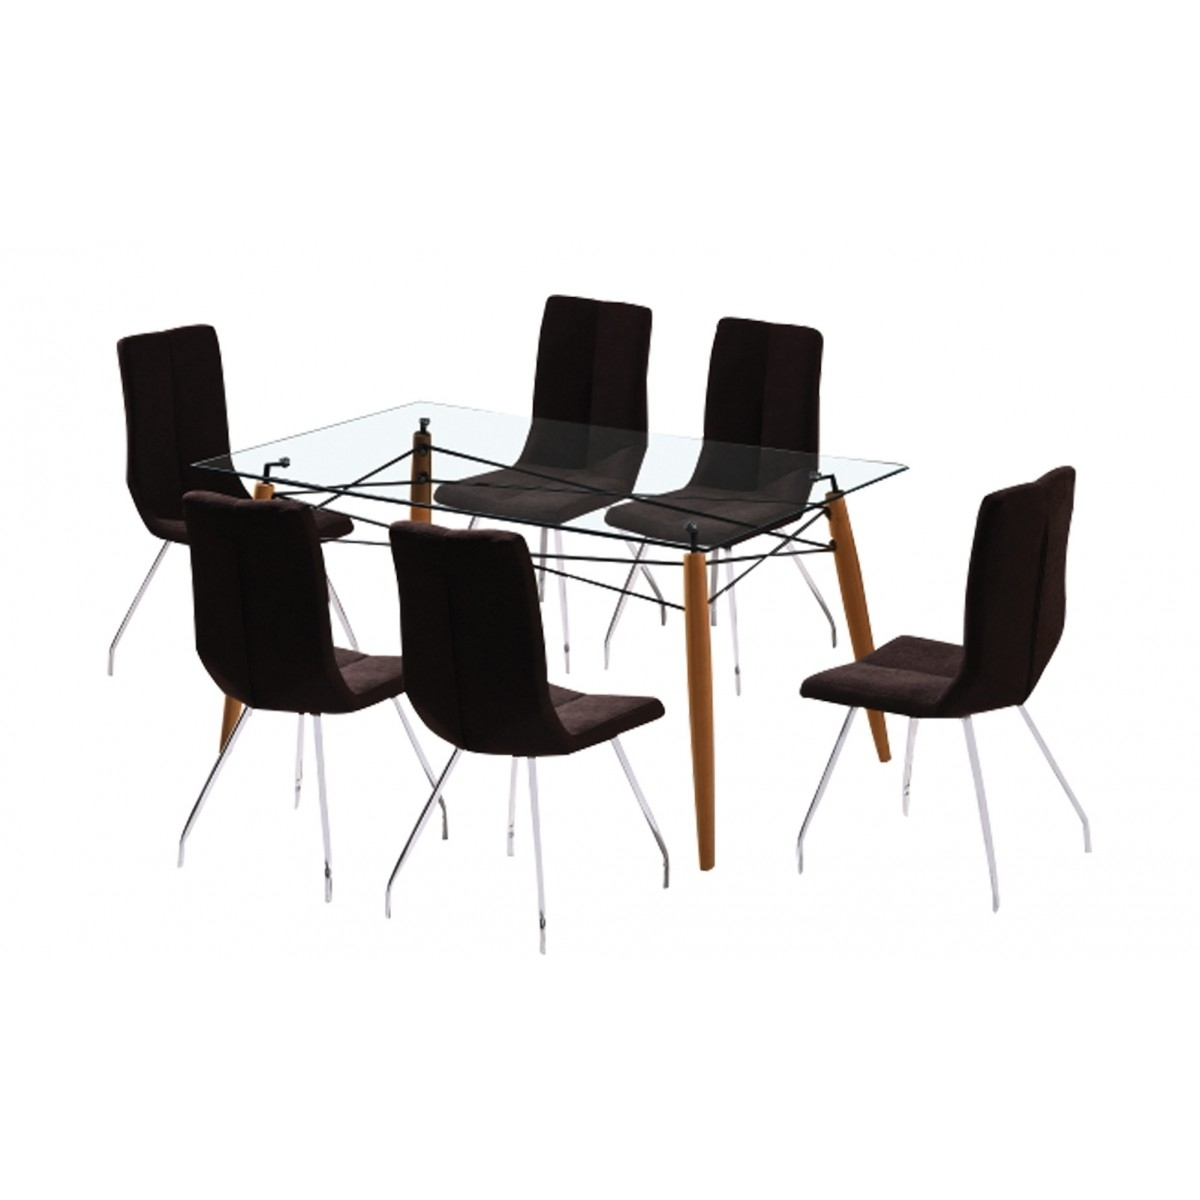 Logan 7 Piece Dining Set | Damro Within Latest Logan 7 Piece Dining Sets (Image 9 of 20)